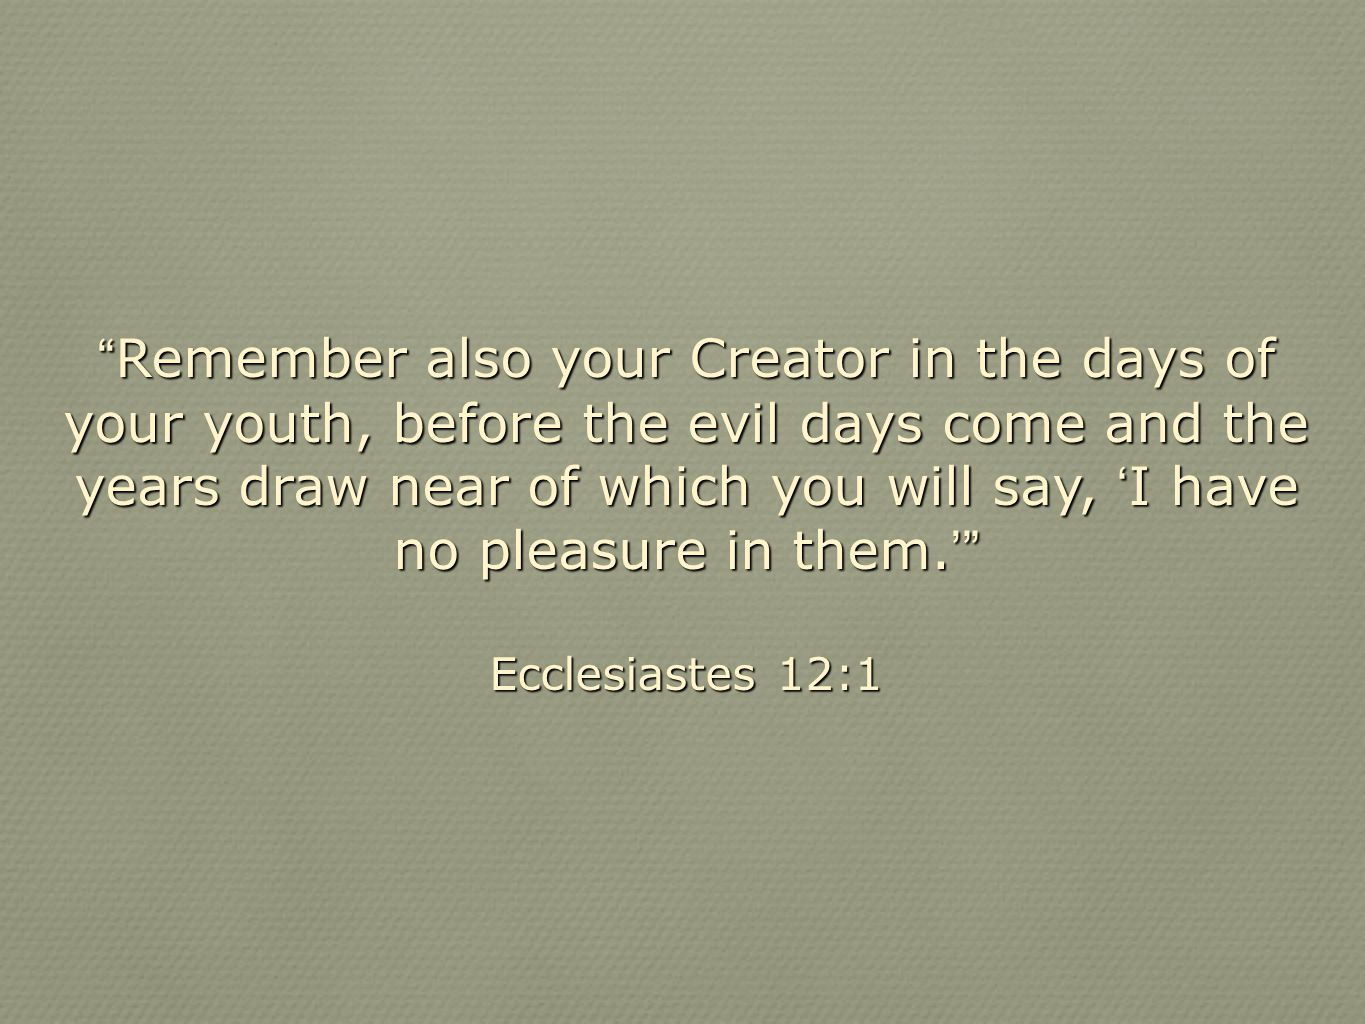 Remember also your Creator in the days of your youth, before the evil days come and the years draw near of which you will say, 'I have no pleasure in them.'